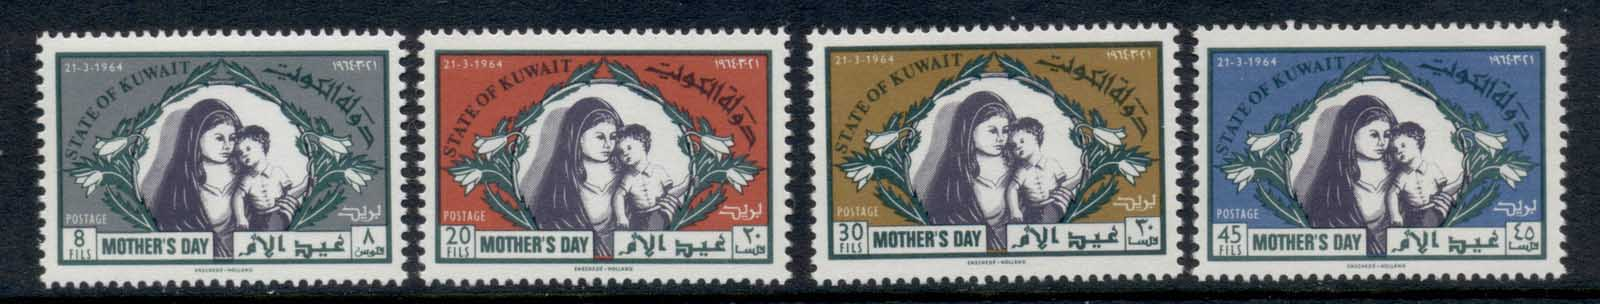 Kuwait 1964 Mothers Day MUH